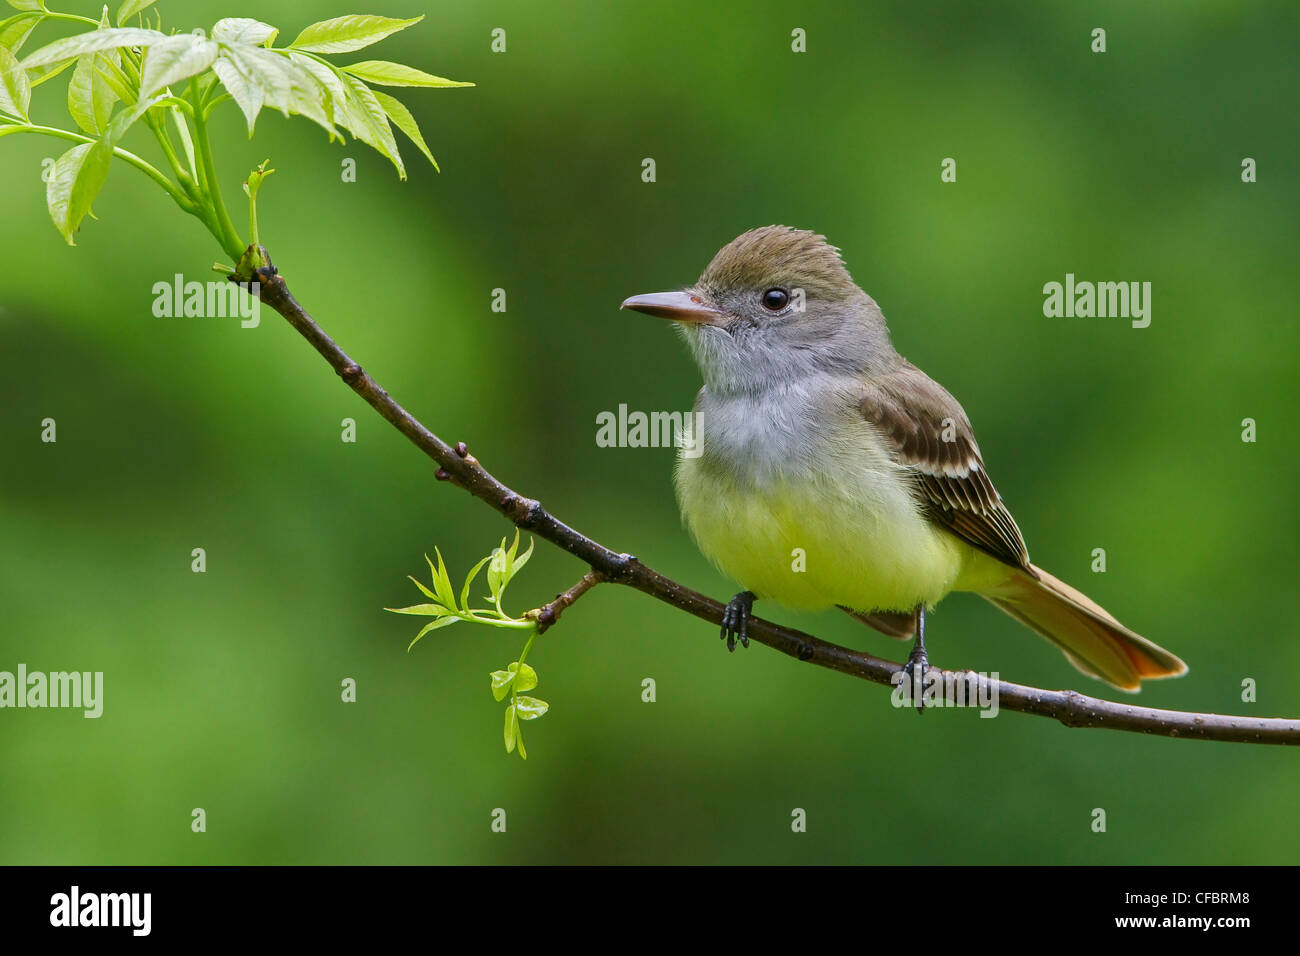 Great Crested Flycatcher (Myiarchus crinitus) perched on a branch in Manitoba, Canada. - Stock Image